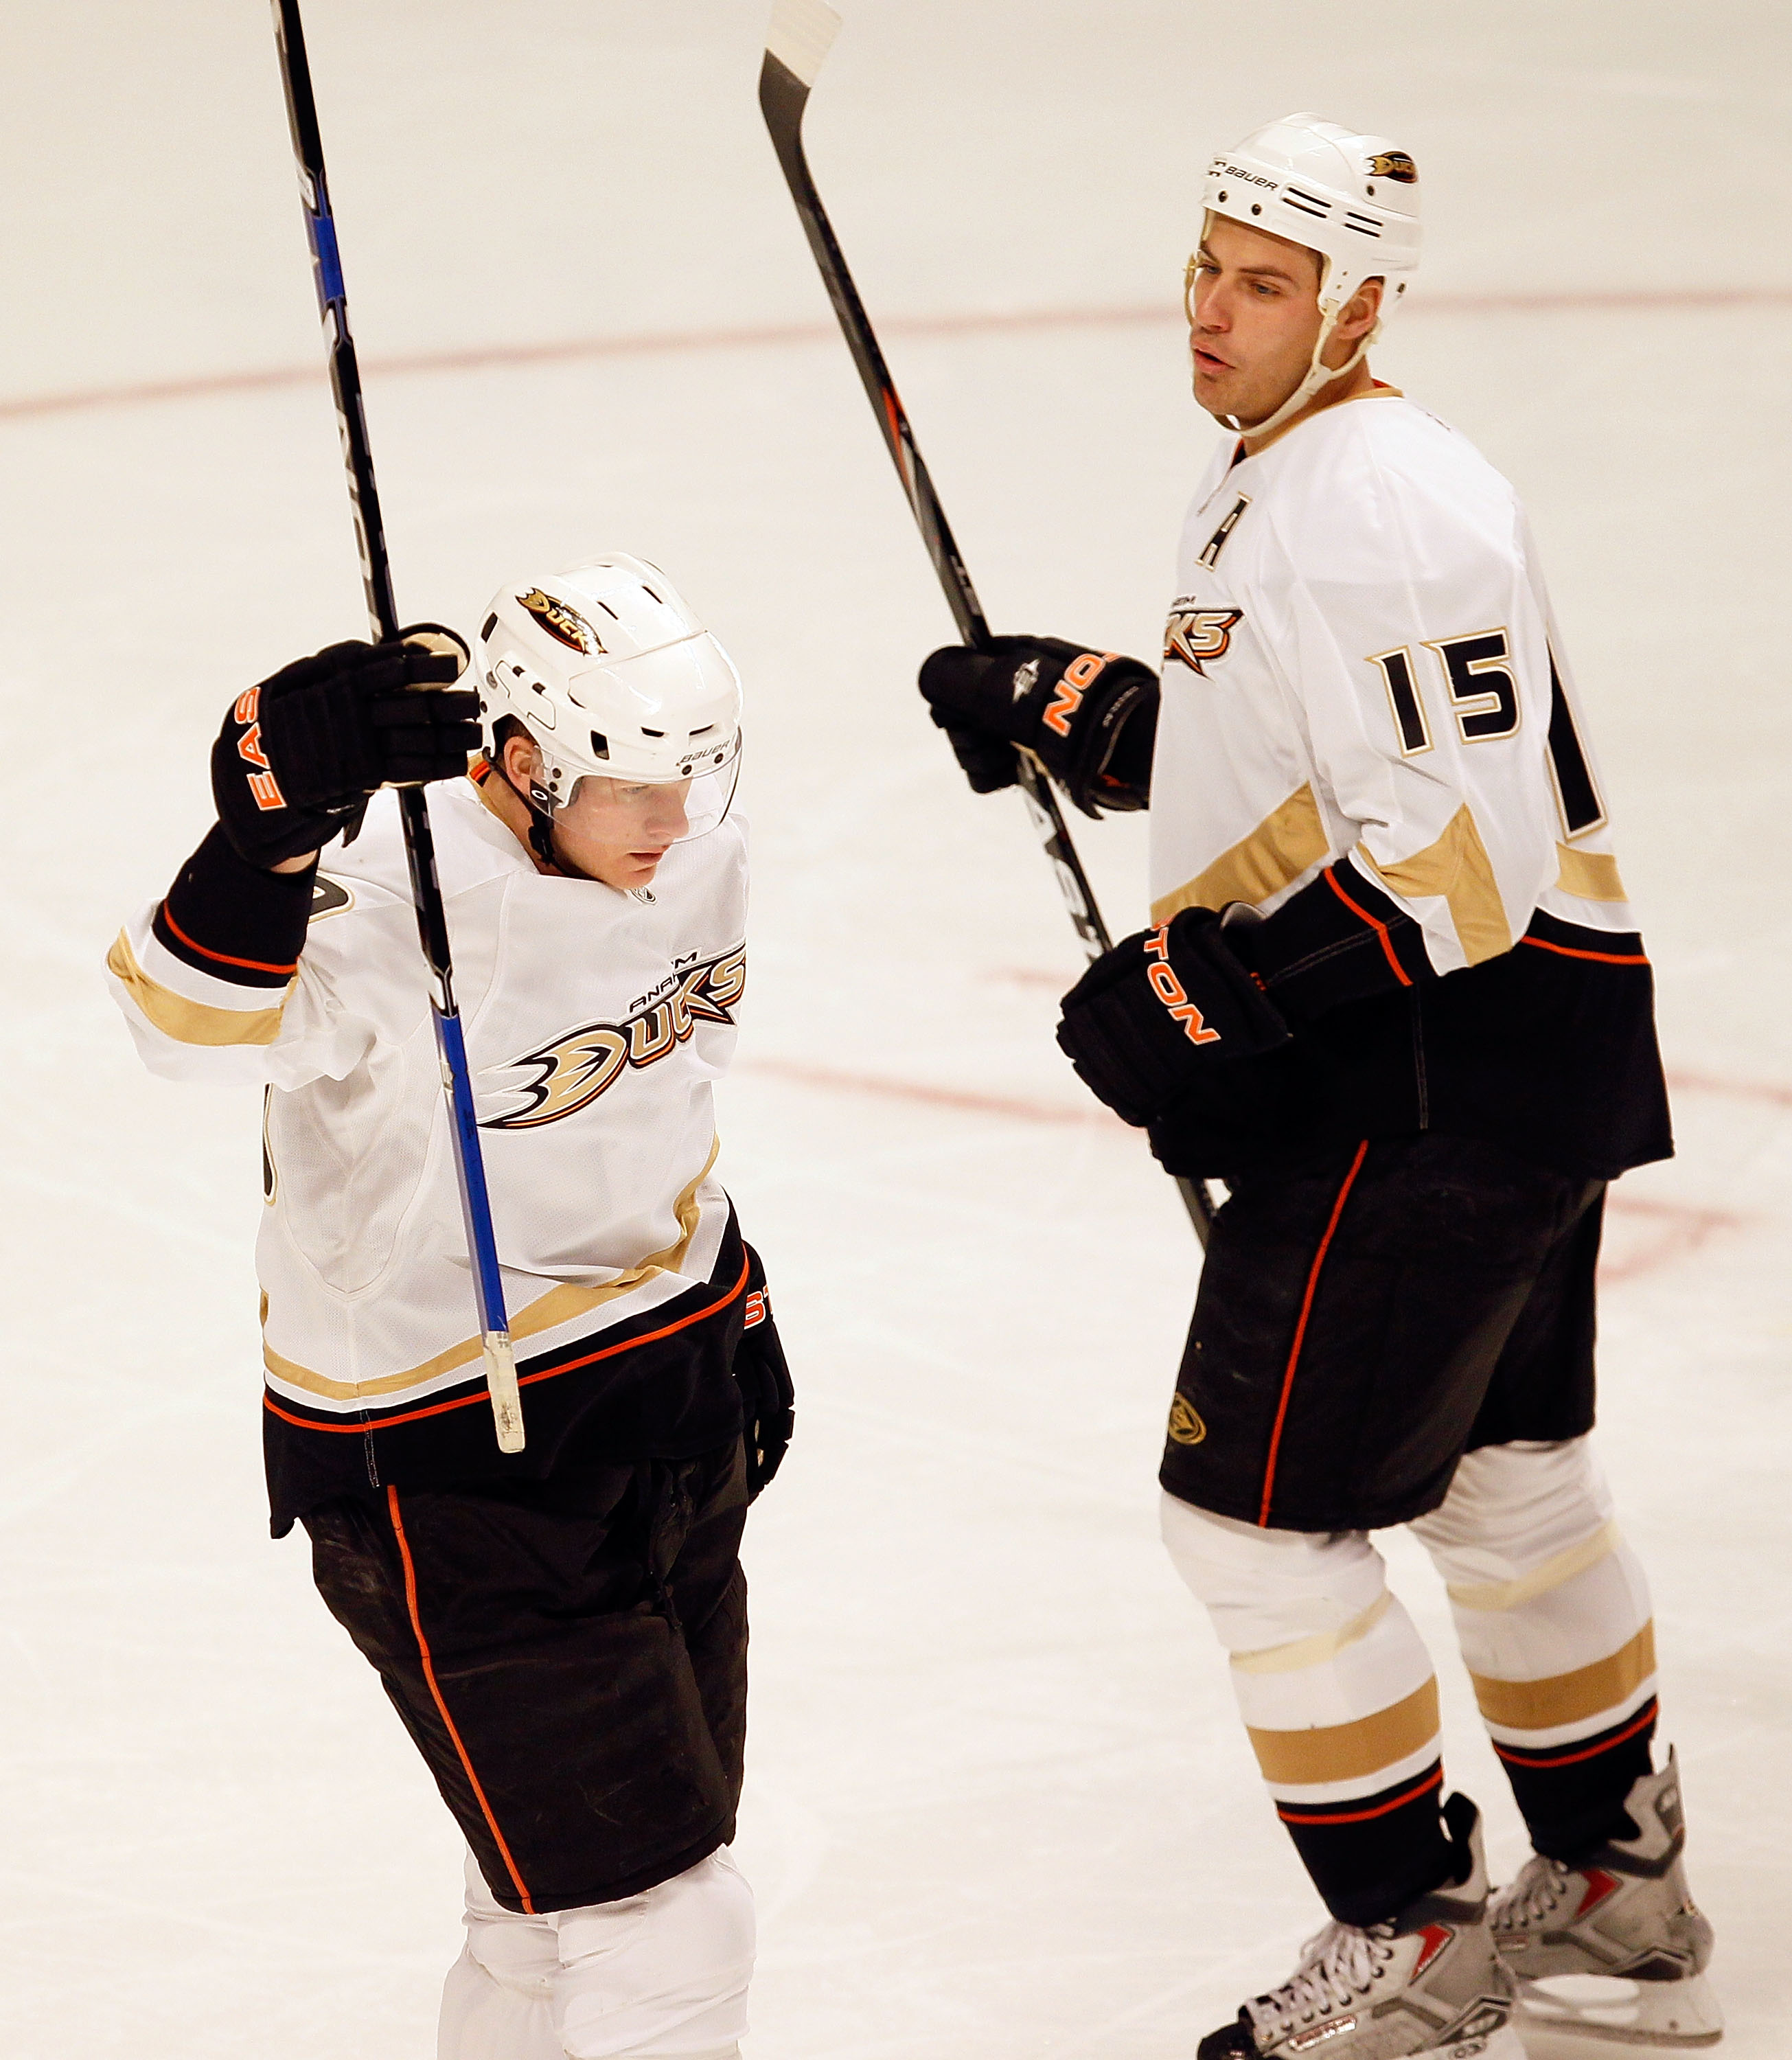 CHICAGO - JANUARY 10: Corey Perry #10 of the Anaheim Ducks celebrates a first period goal against the Chicago Blackhawks as teammate Ryan Getzlaf #15 skates to join him at the United Center on January 10, 2010 in Chicago, Illinois. (Photo by Jonathan Dani